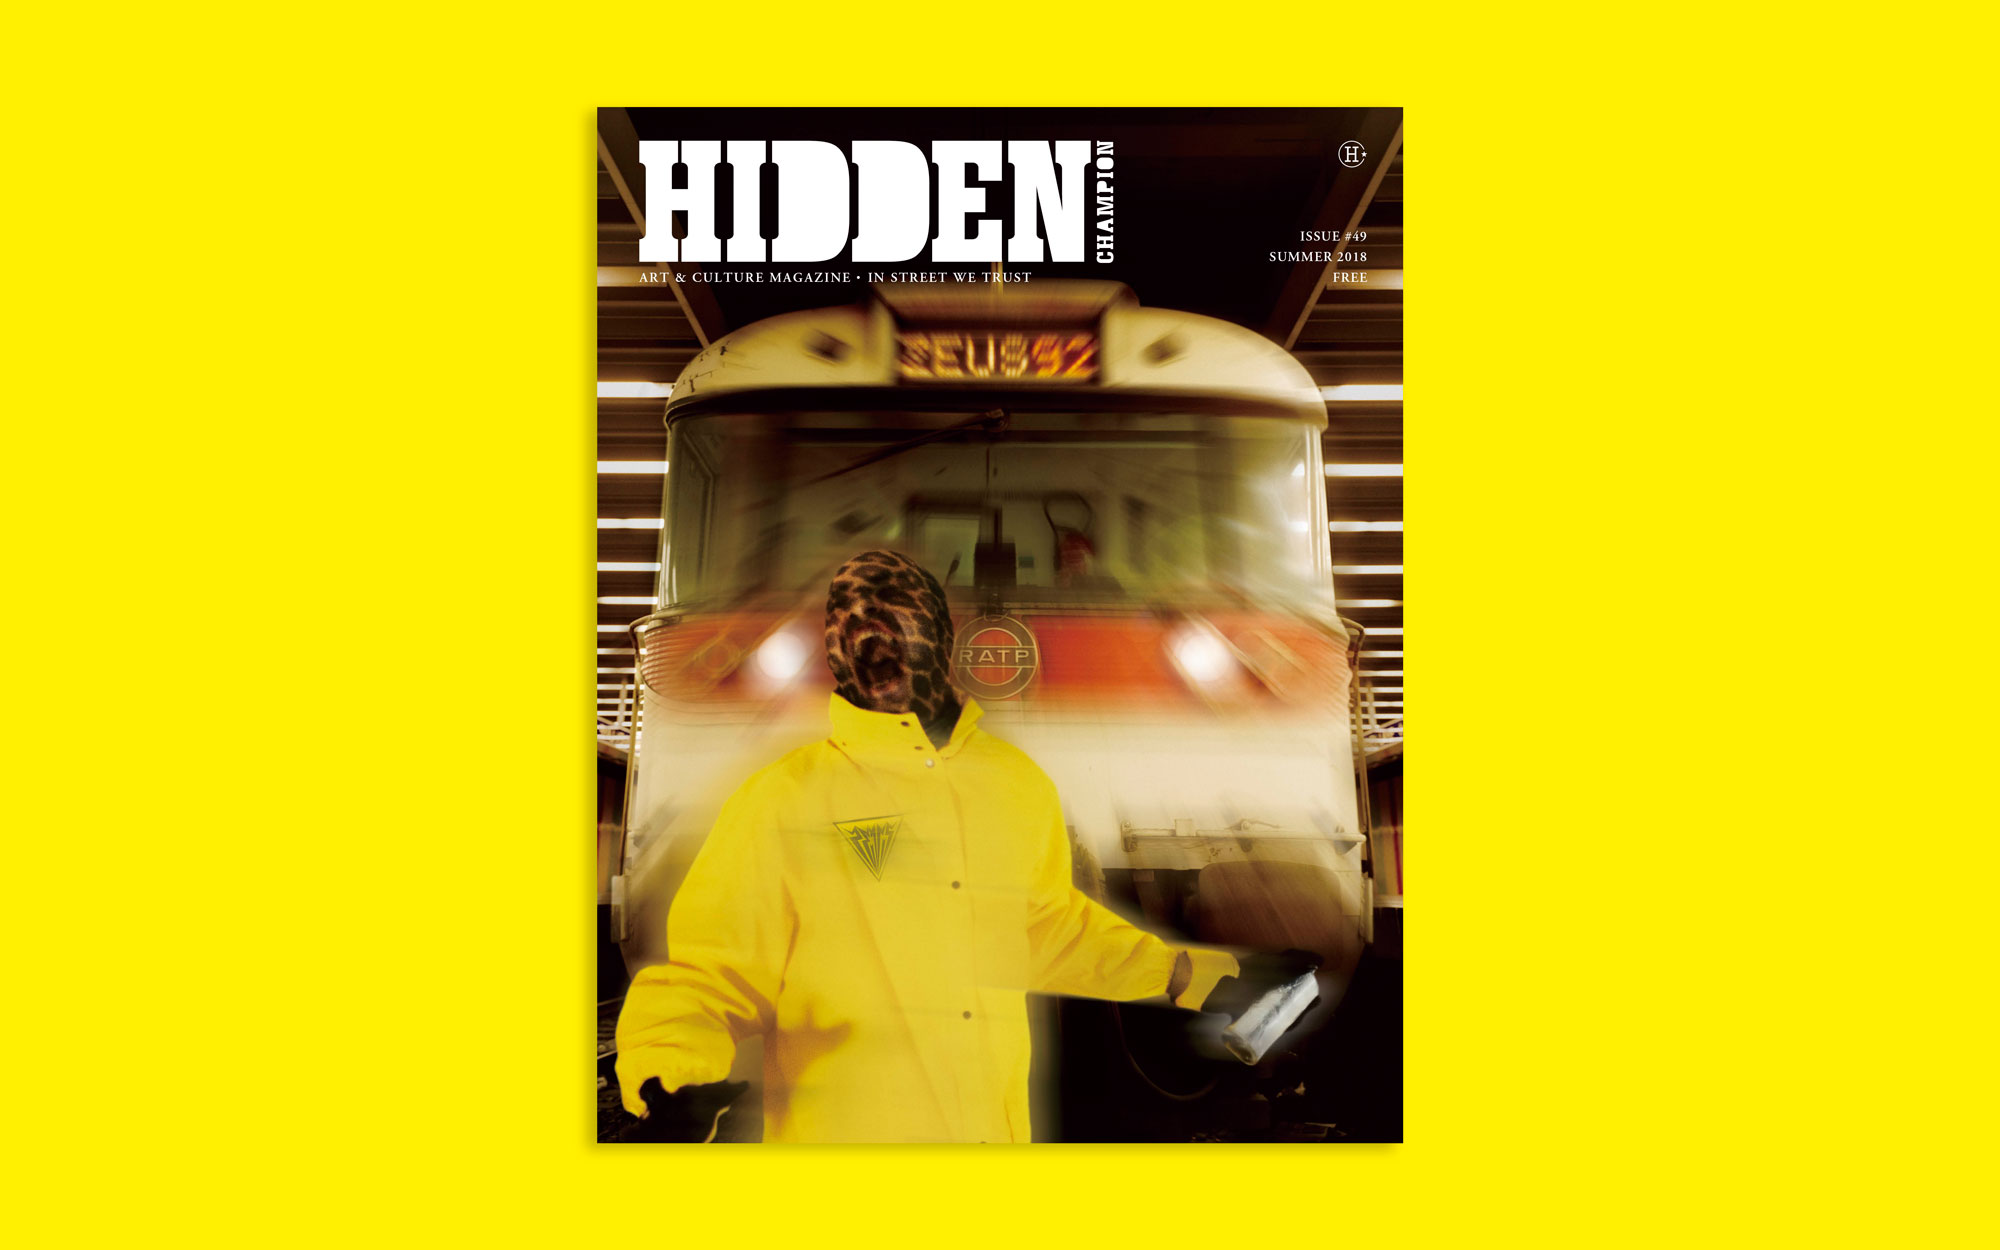 HIDDEN49_Cover_ZEVS_W2000_Yellow